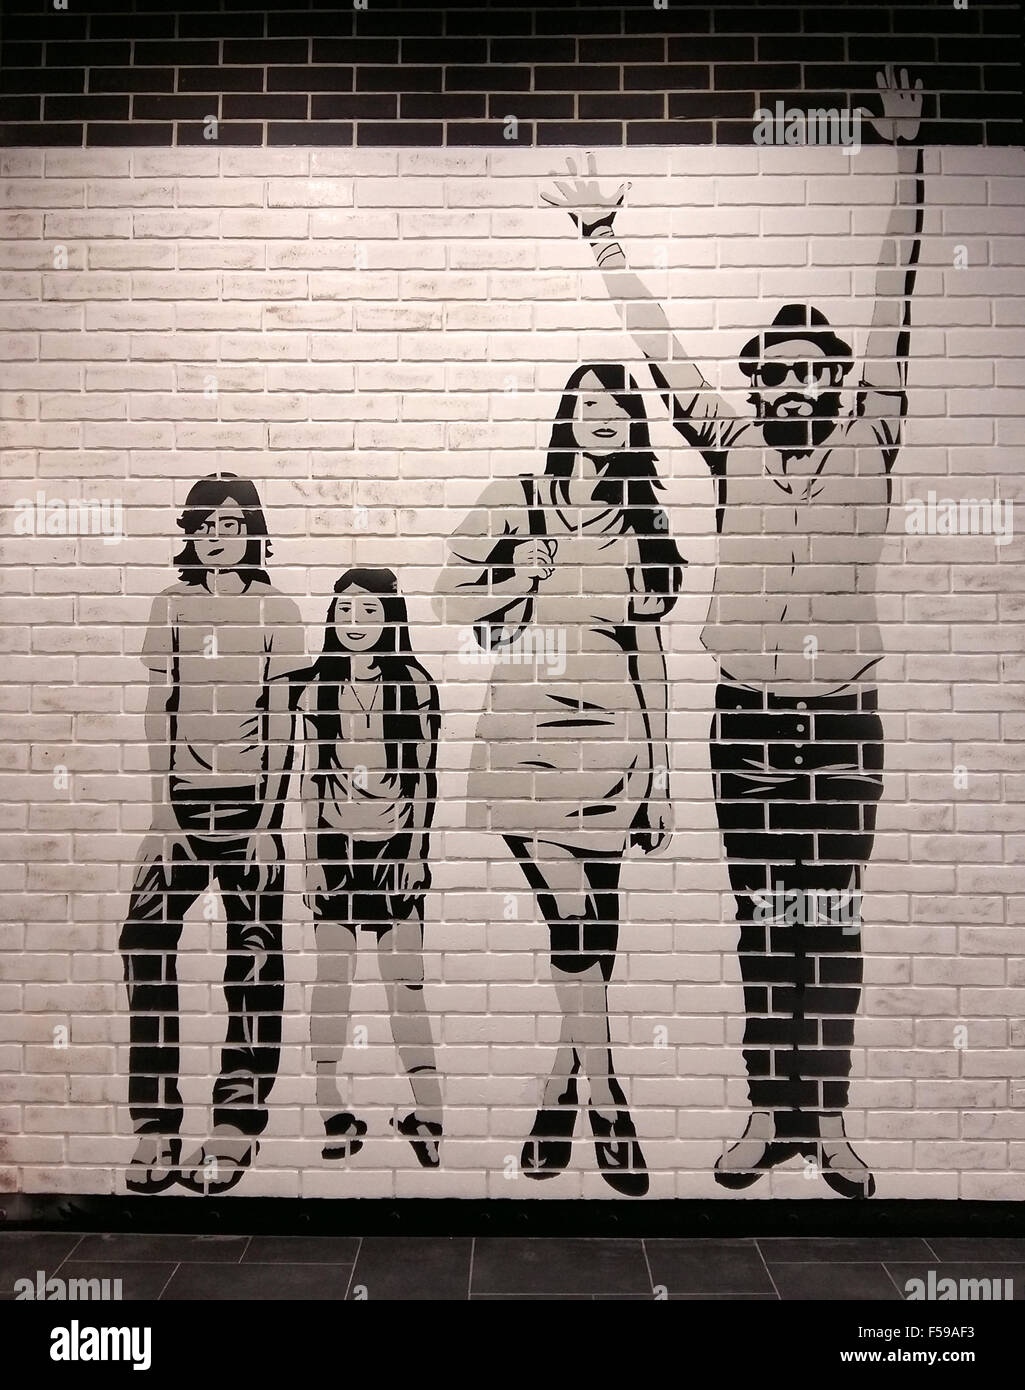 New Grunge White And Black Brick Wall With Painted Happy Family